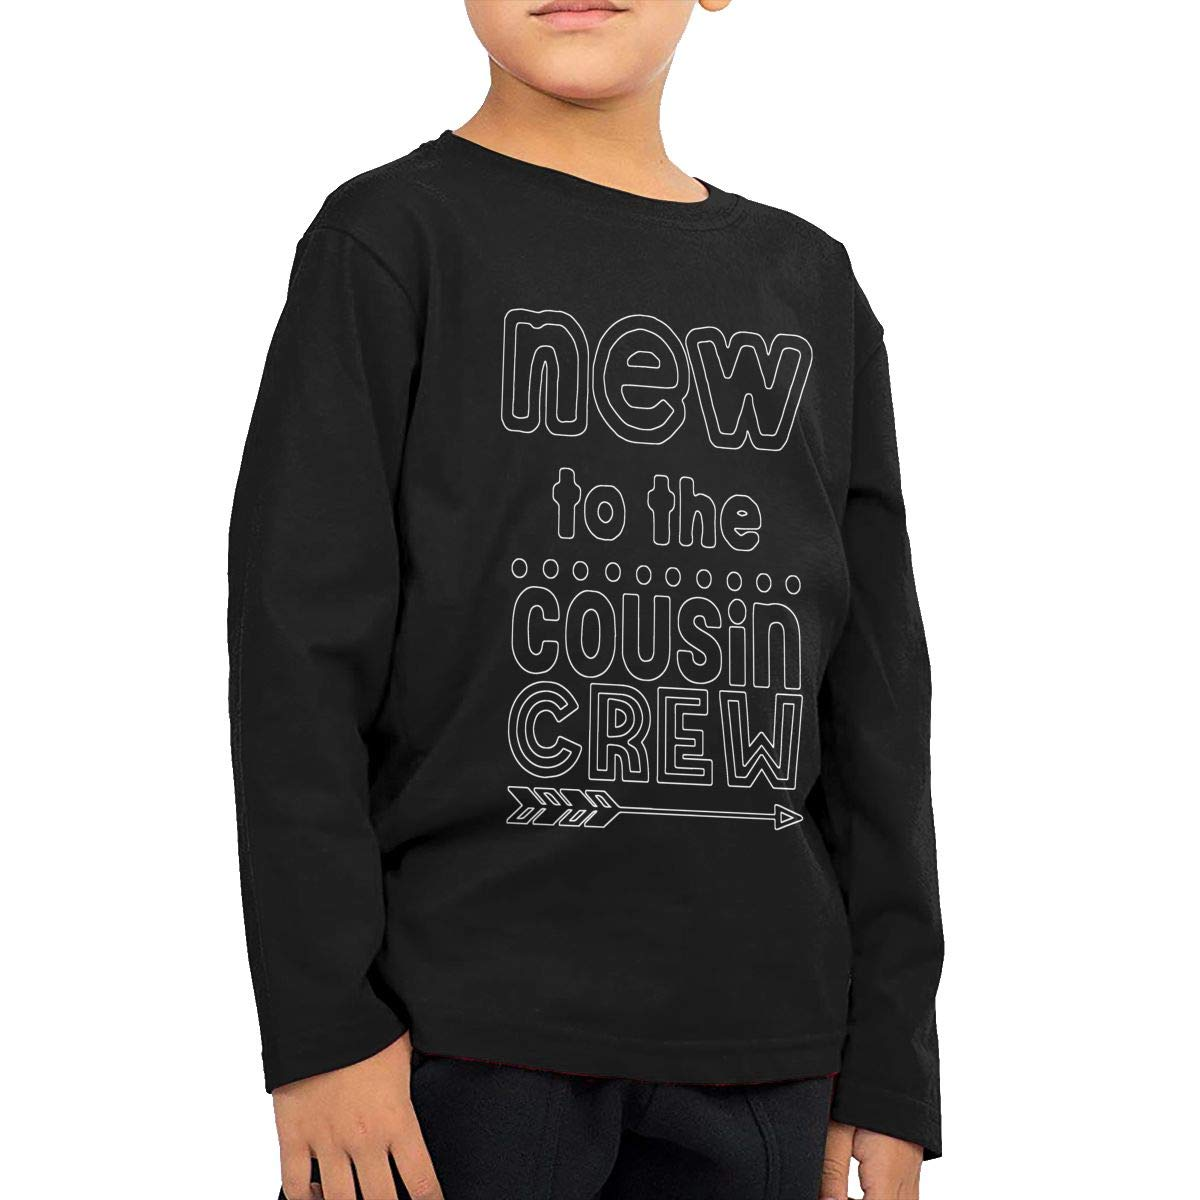 New to The Cousin Crew Childrens Black Cotton Long Sleeve Round Neck T Shirt for Boy Or Girl